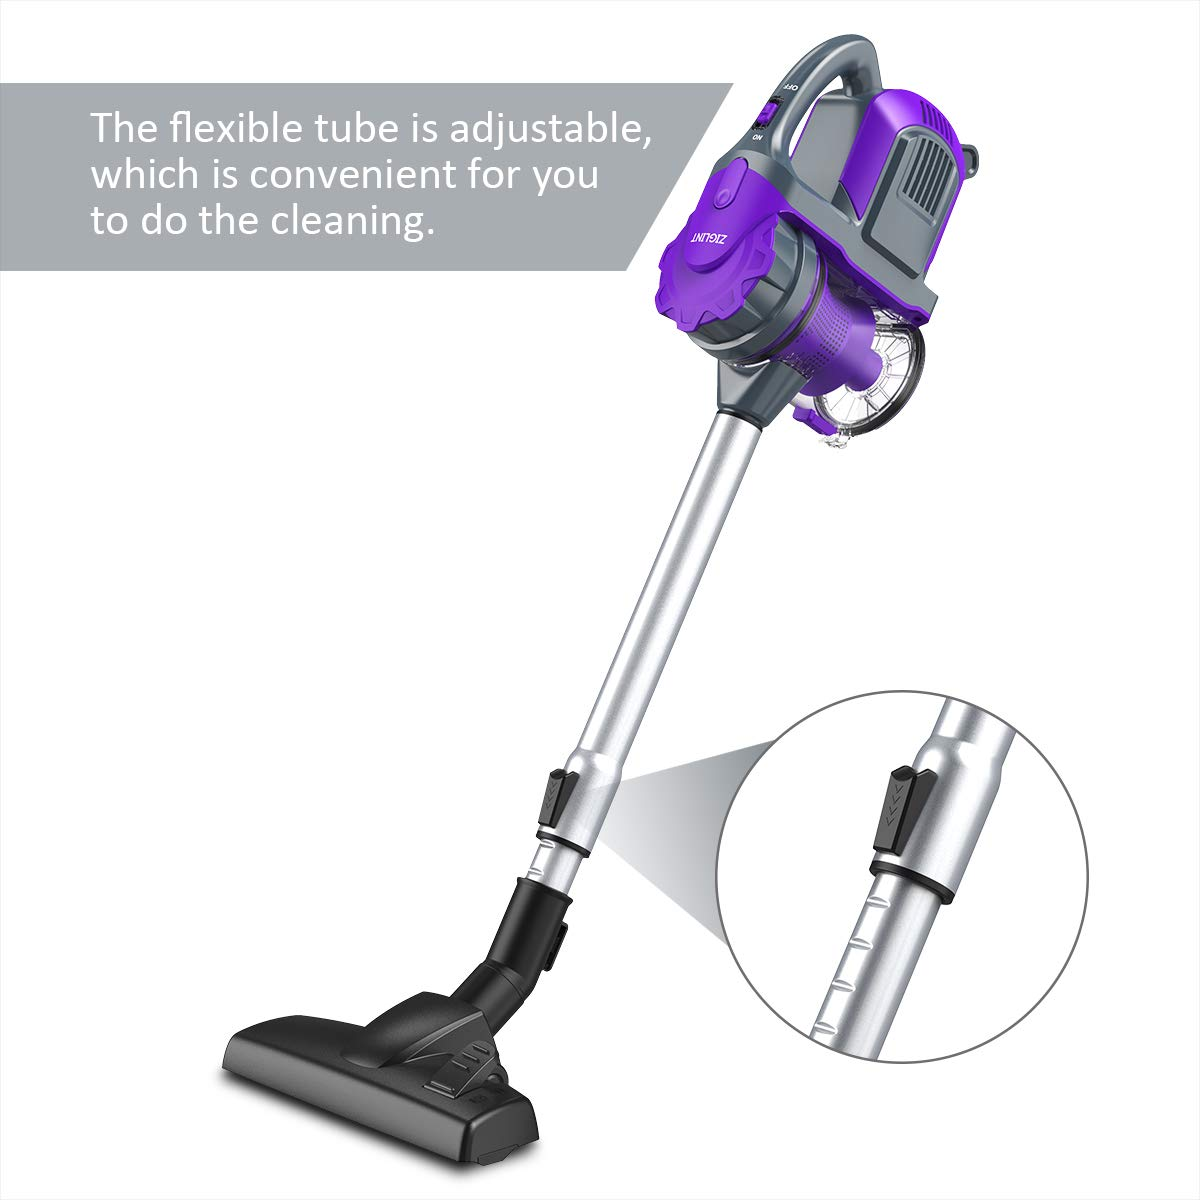 Amazon.com - ZIGLINT Cordless Vacuum Cleaner 2-in-1 Lightweight Hand Held Vacuum Cleaner Portable Vacuum Cleaner for Car Pet Hair with Long Lasting Battery ...